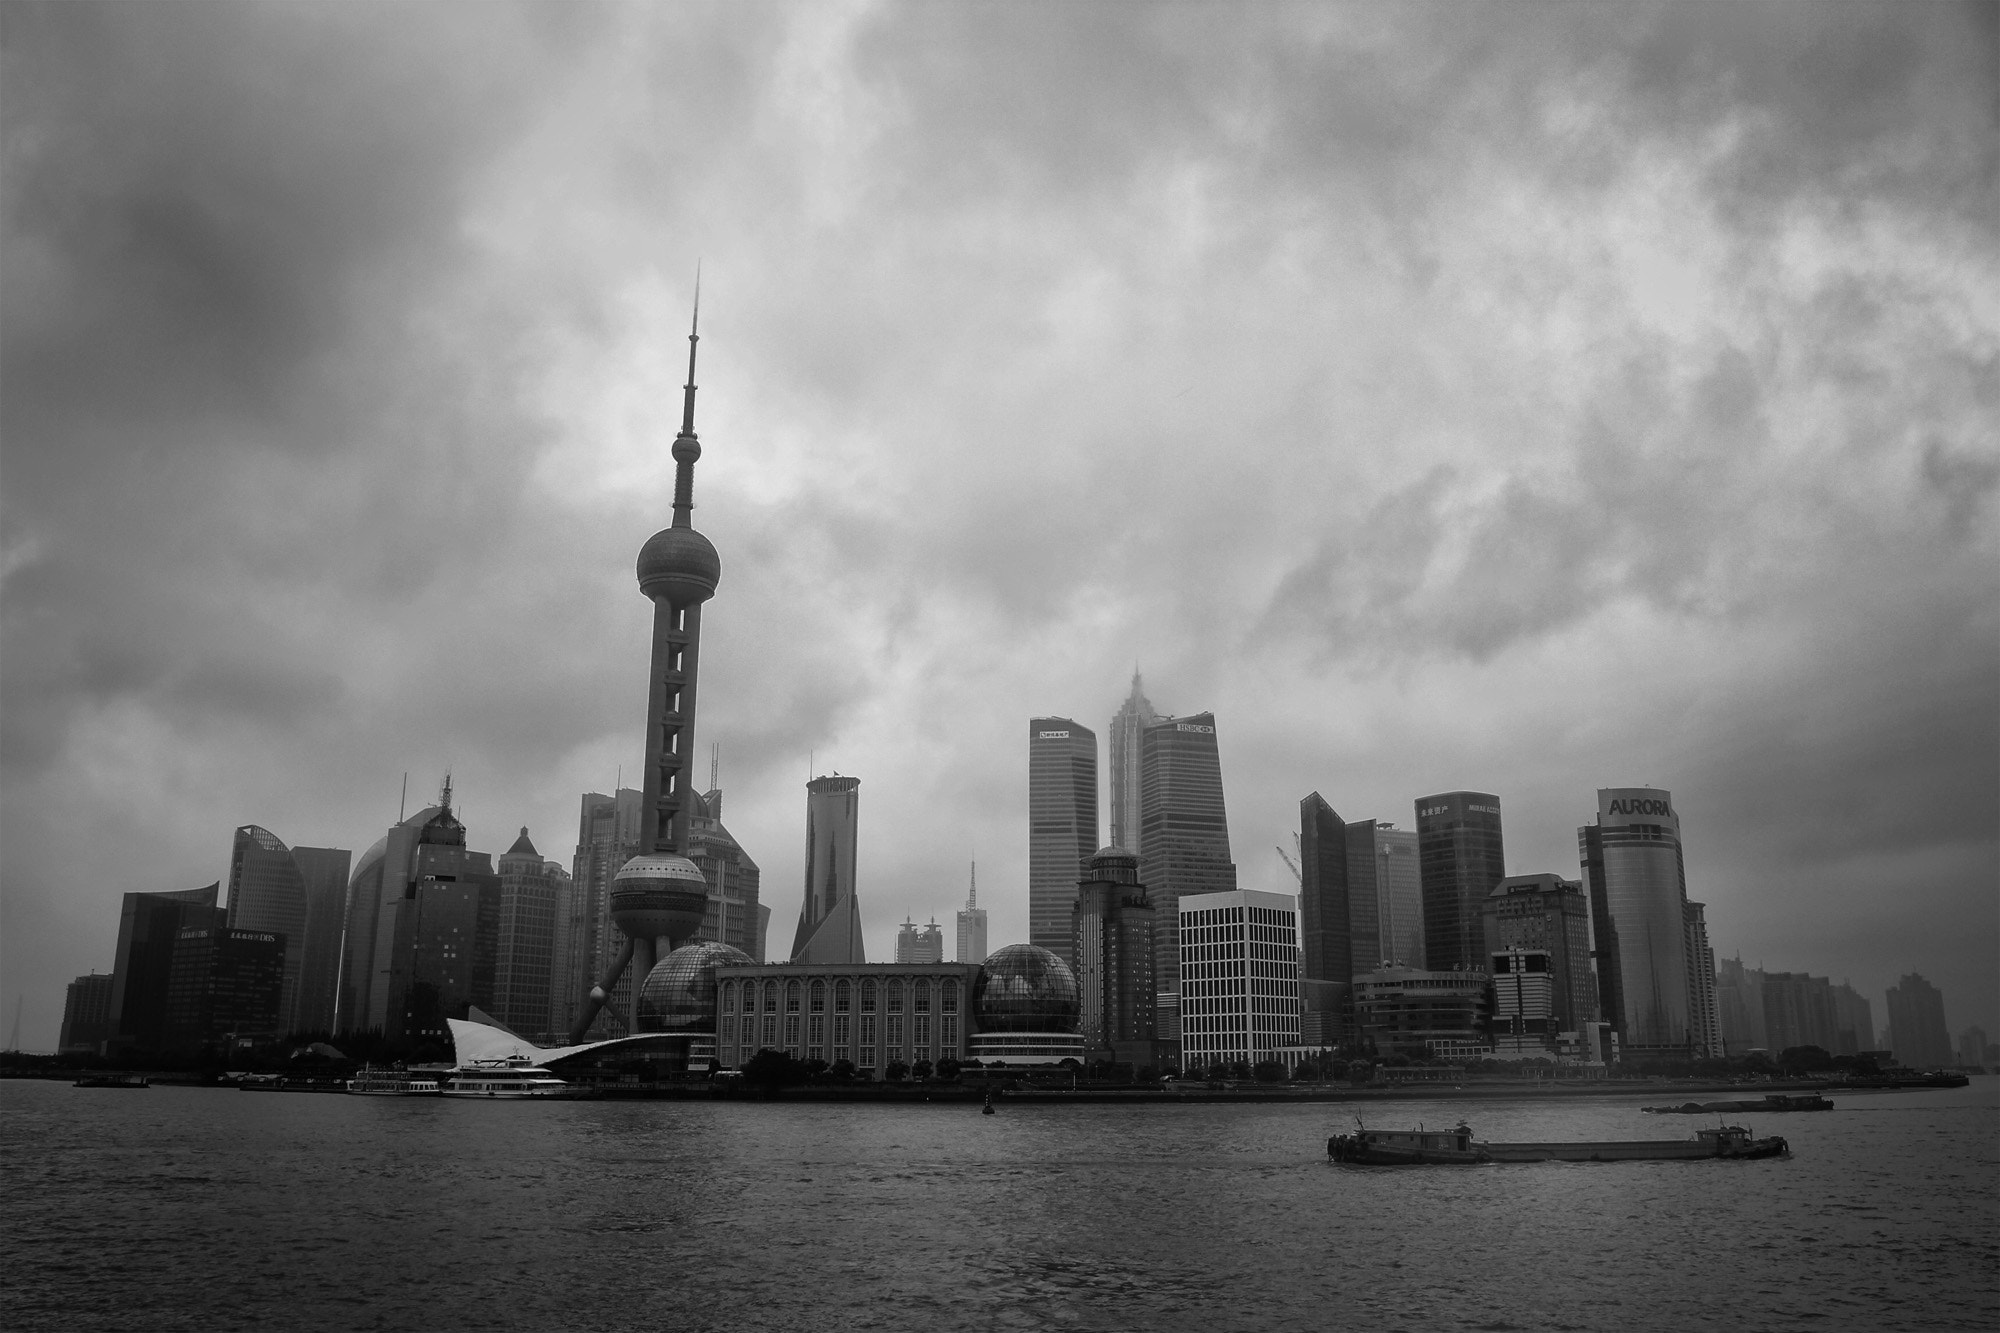 Photograph Shanghai New City by Abumessi Journey on 500px